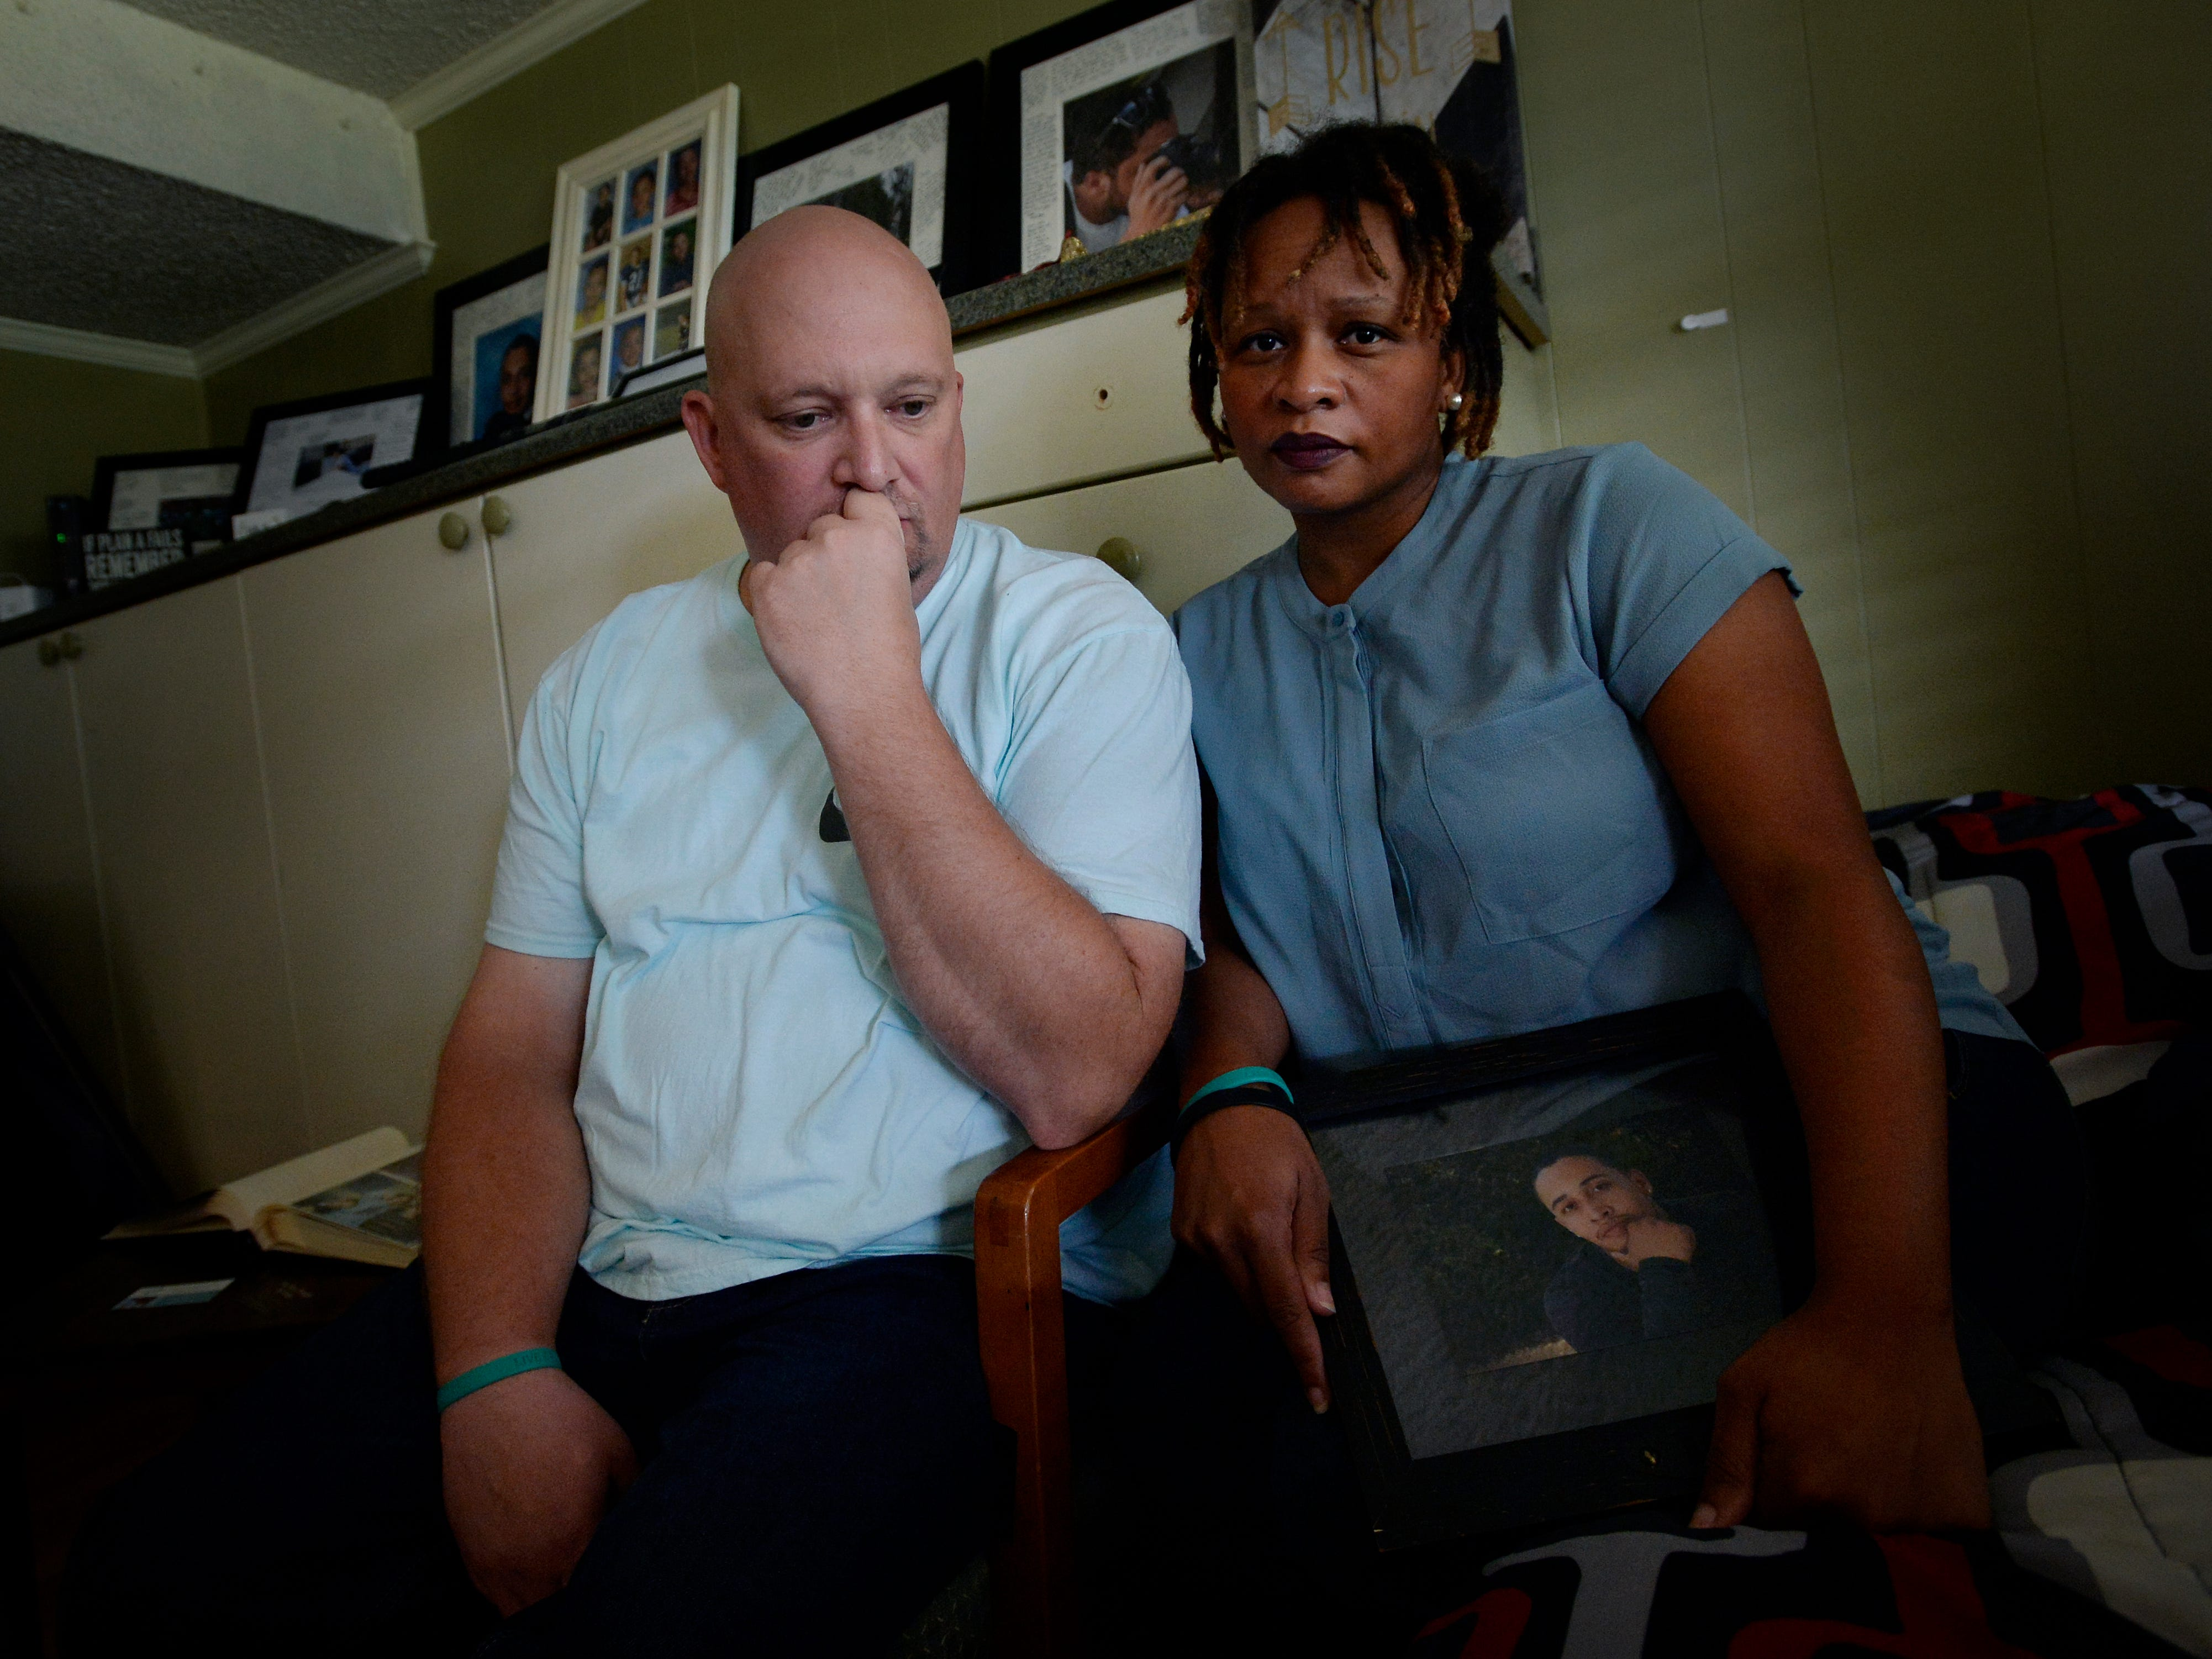 Michael Blado and his wife Rachel hold a photograph of their son Josh Holton as they sit in his bedroom on Thursday, Oct. 18, 2018, in Nashville, Tenn. Holton overdosed in 2016 after he bought Xanax on the Dark Web to self-medicate for insomnia but the pills he received contained fentanyl causing his death.